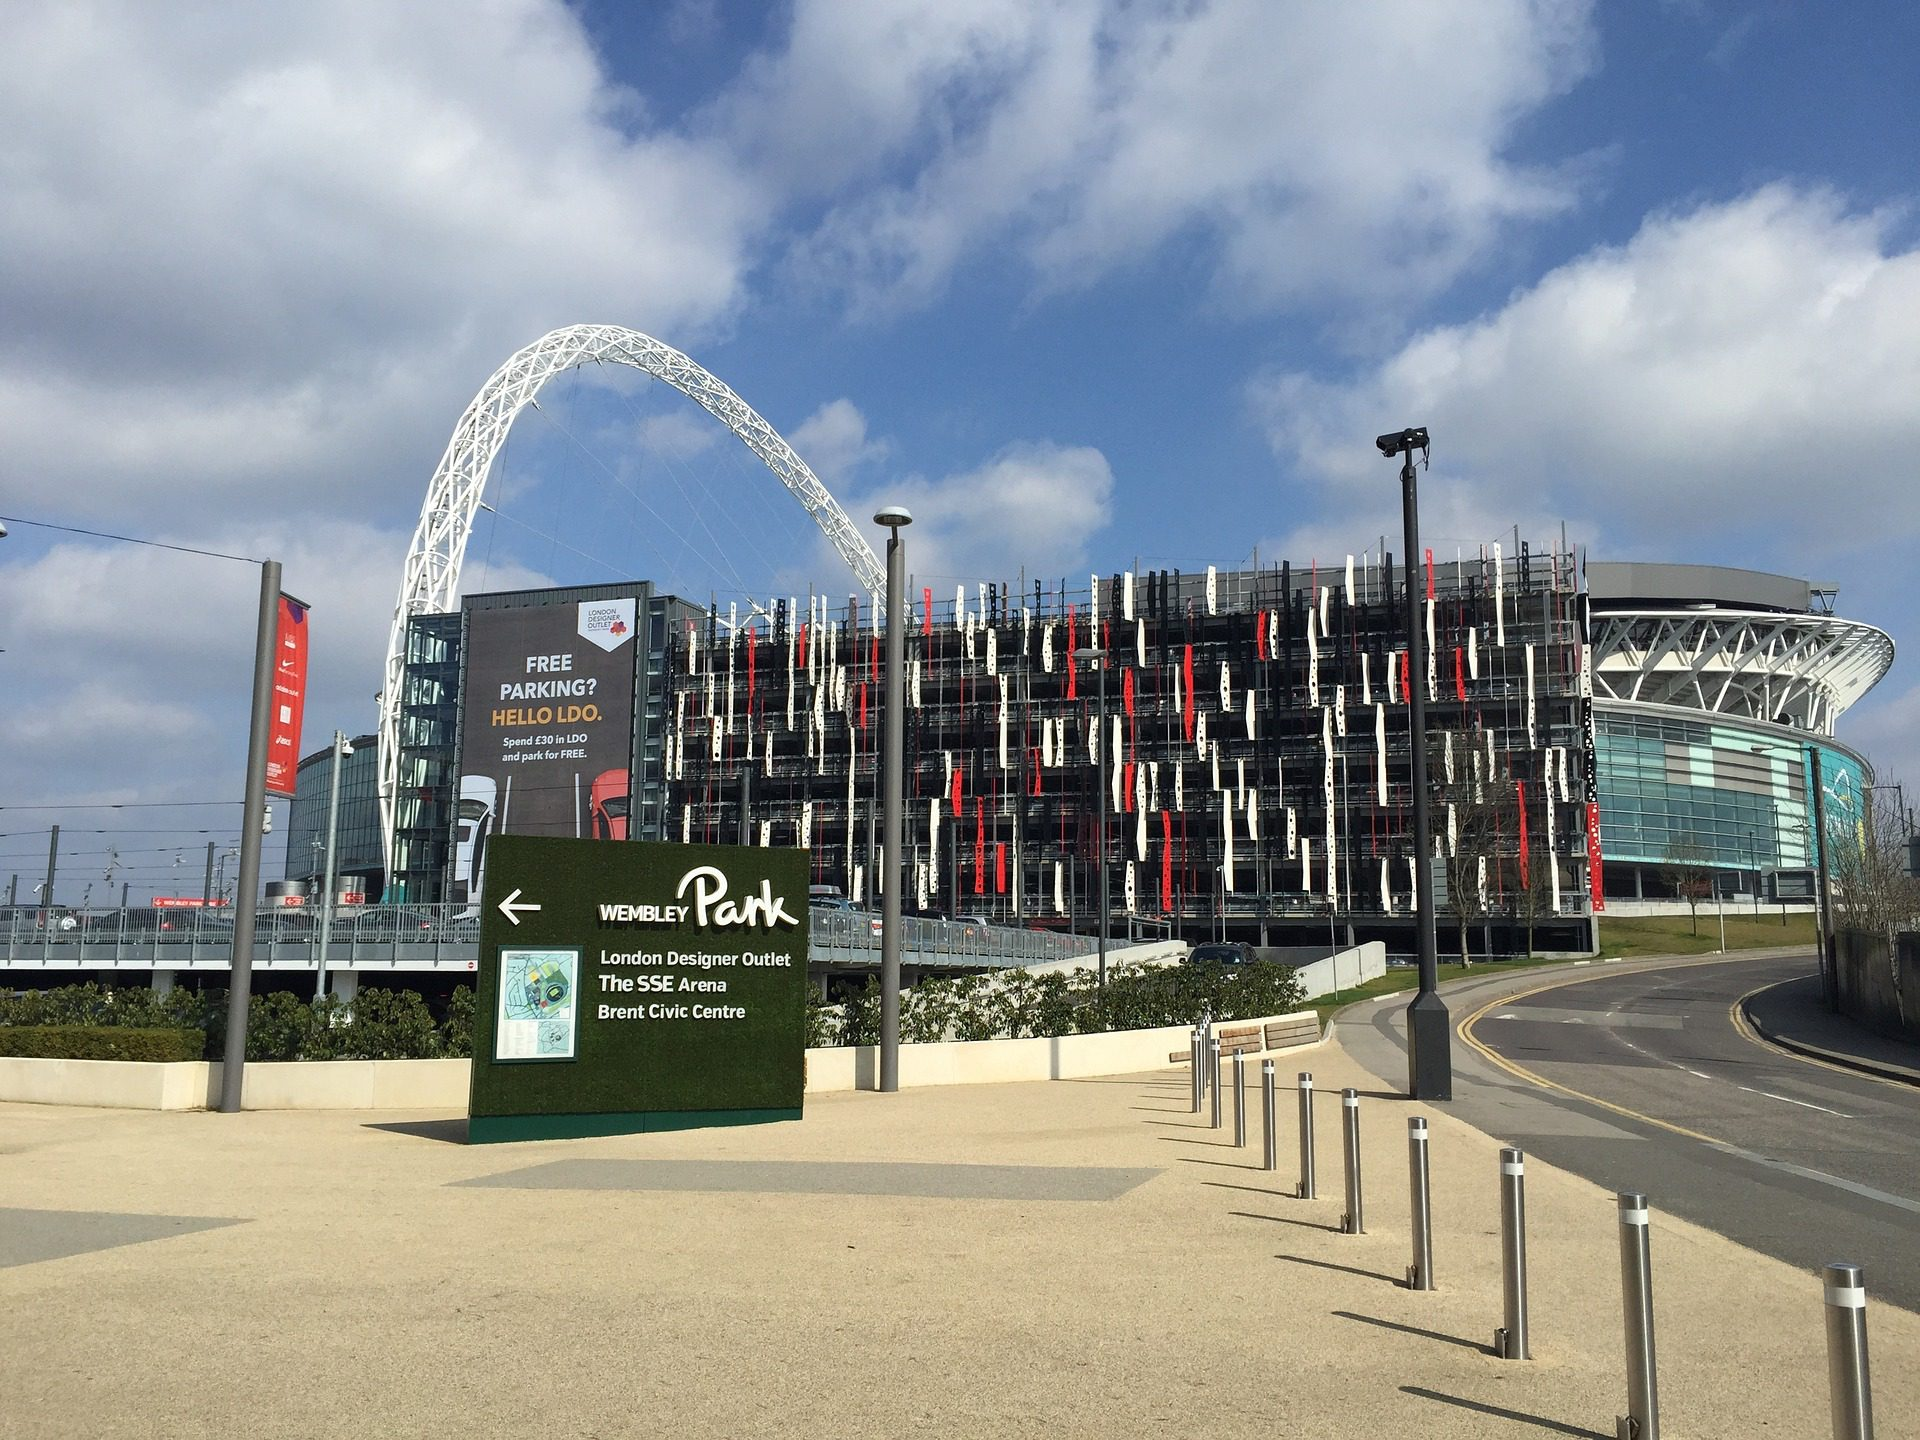 NFL London Games: How To Survive the Wembley Bag Policy